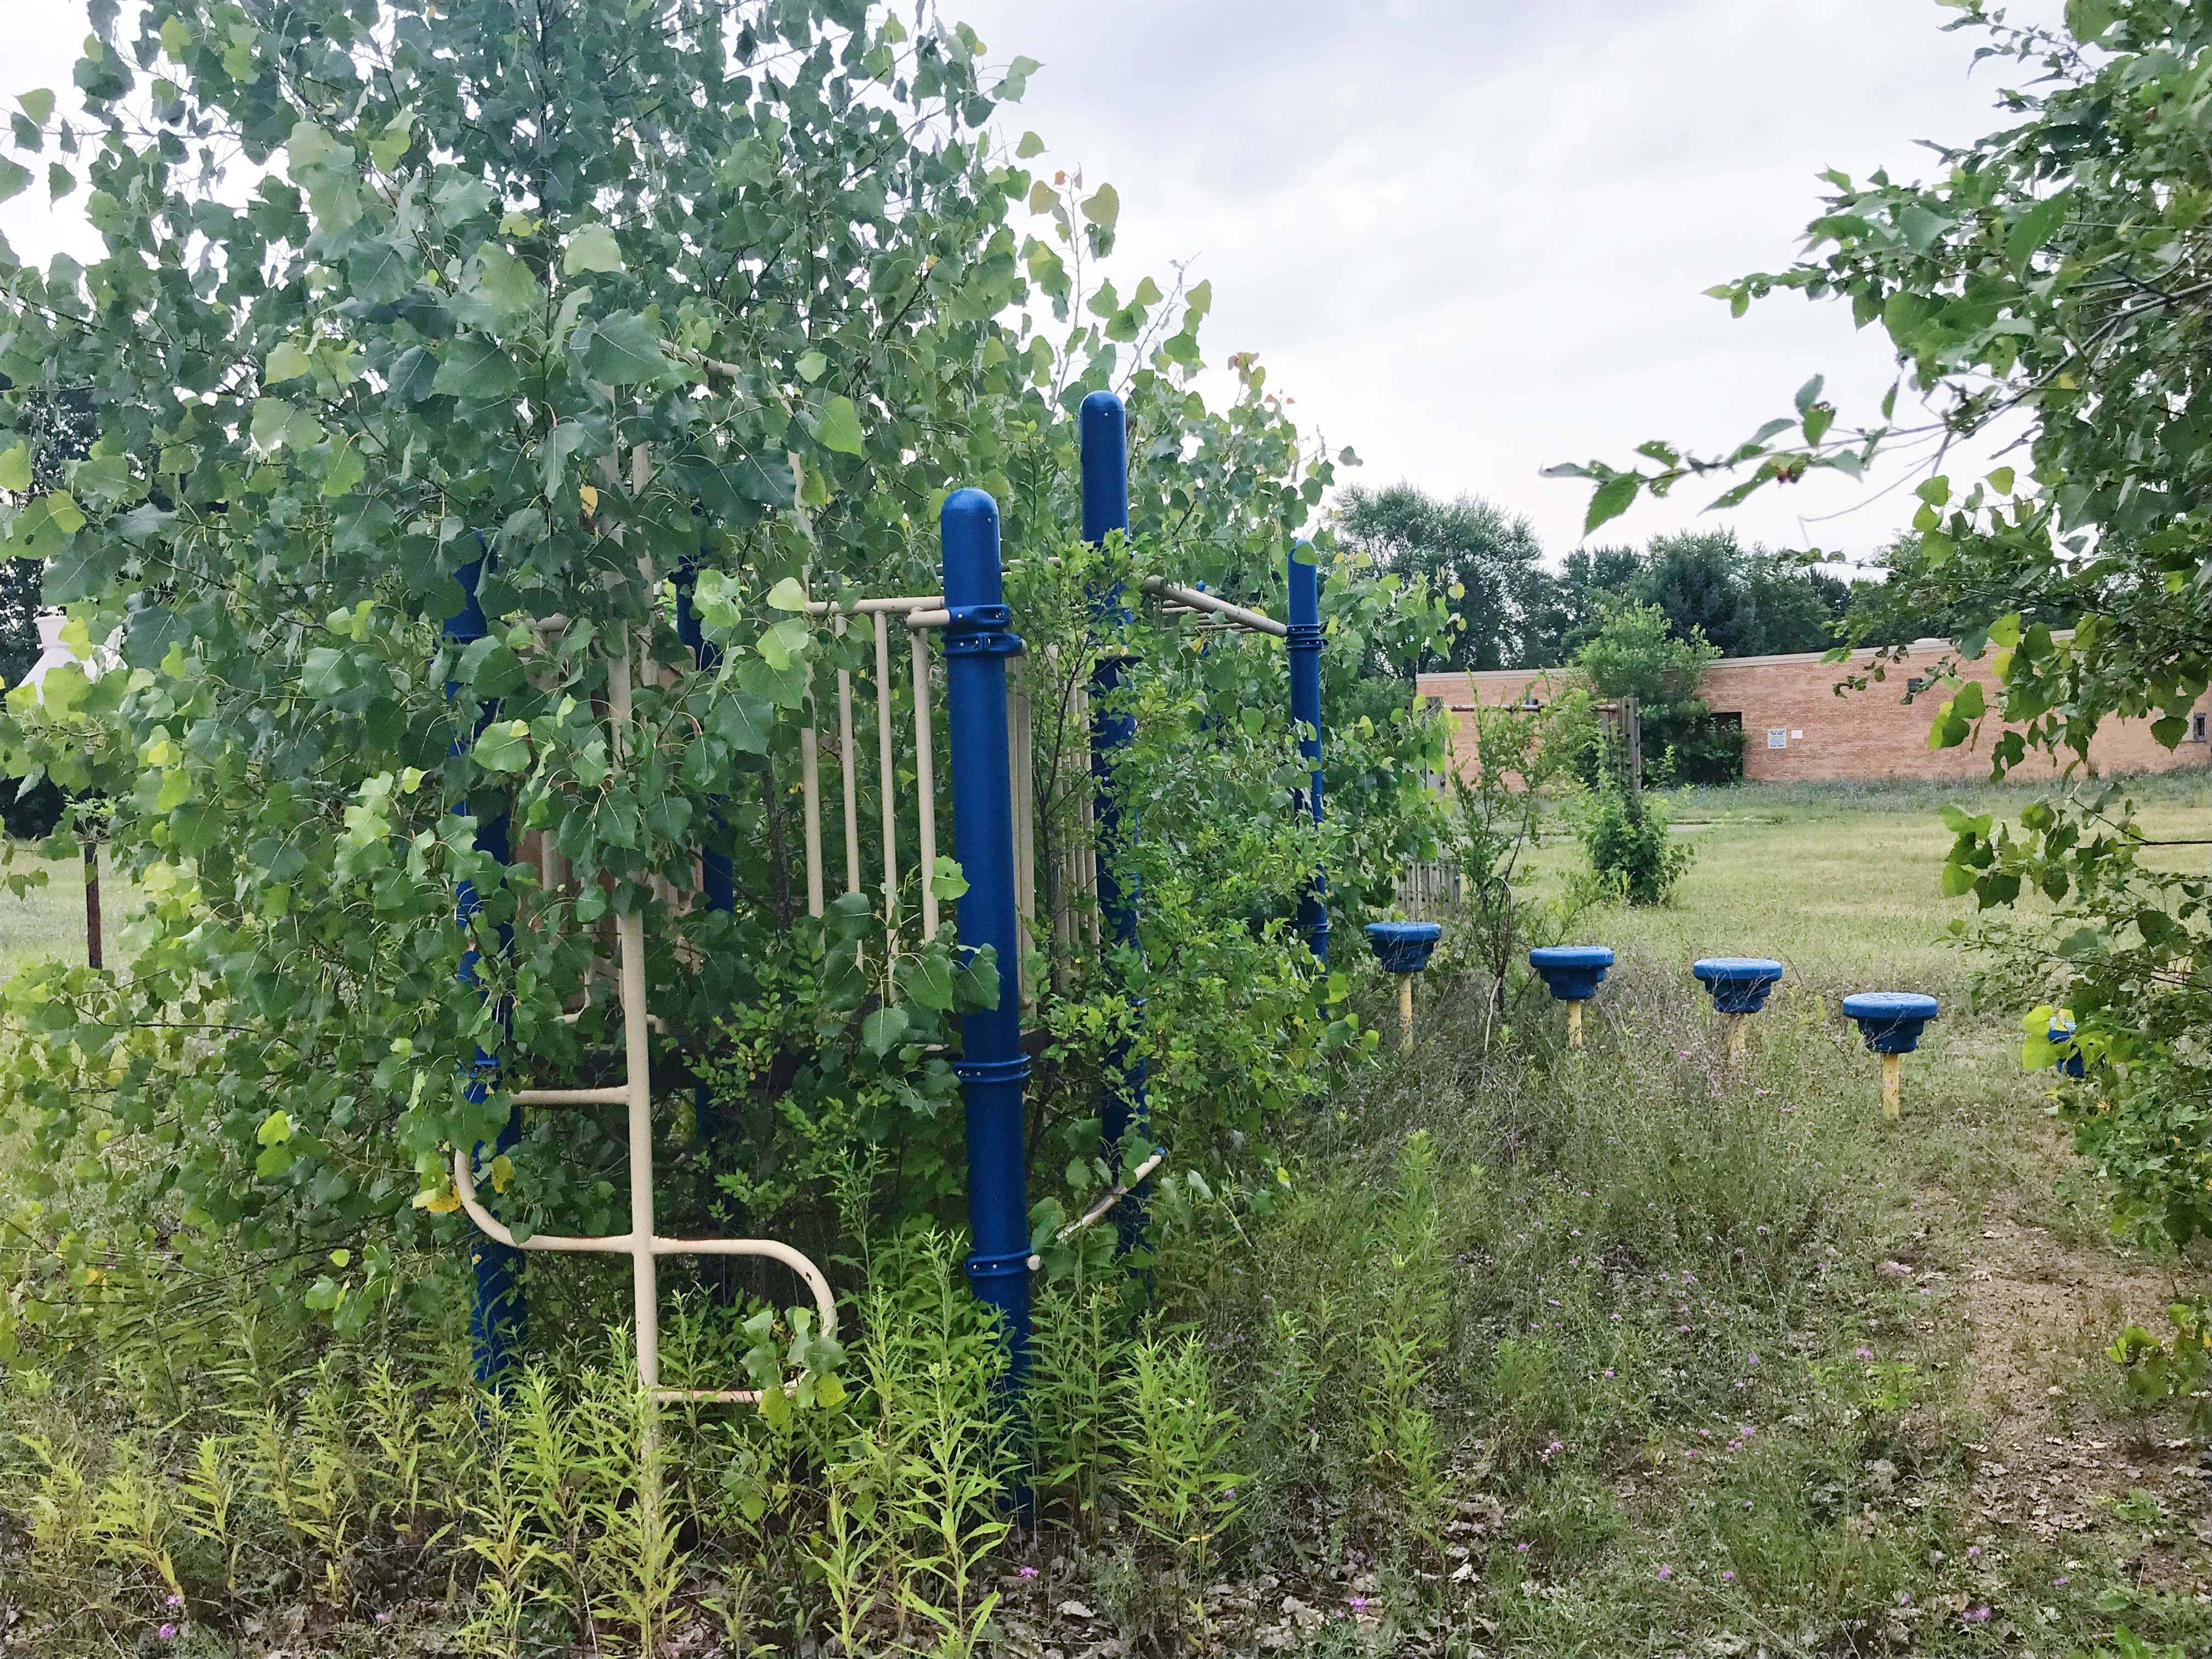 Old playground equipment at the Kettering school, overgrown with weeds.